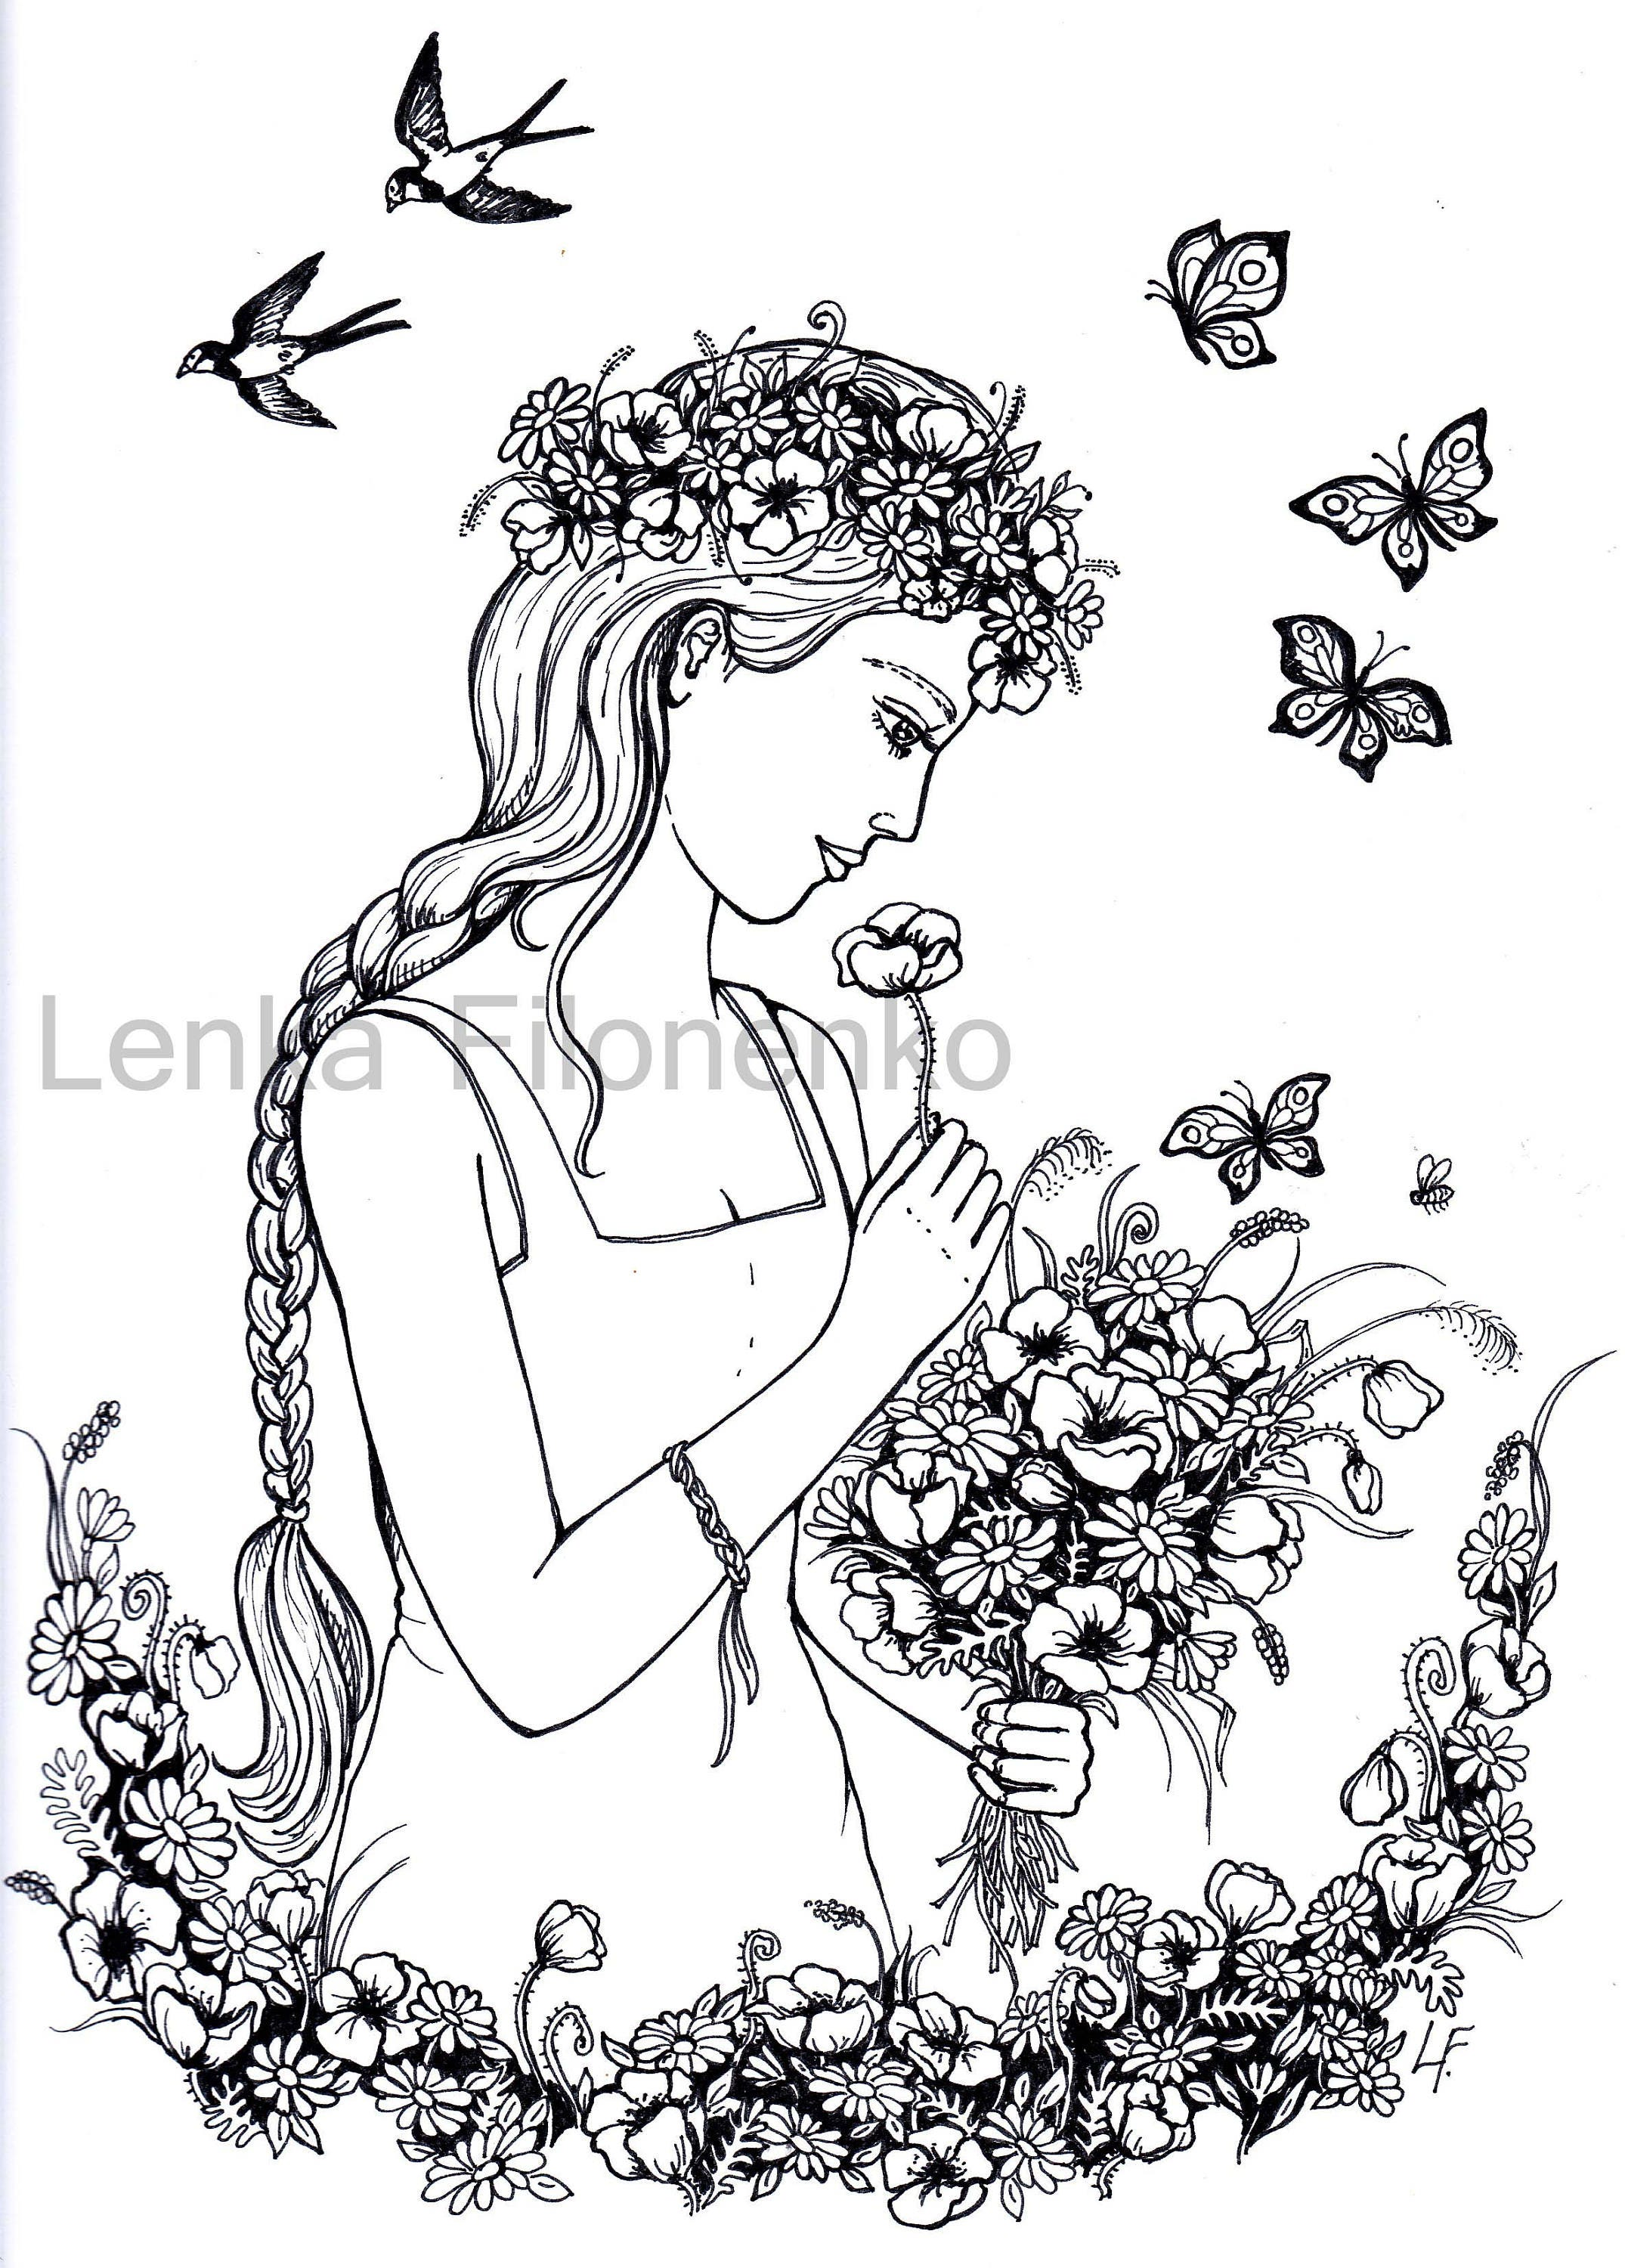 Coloring page Woman with Flowers Adult Coloring pages Art